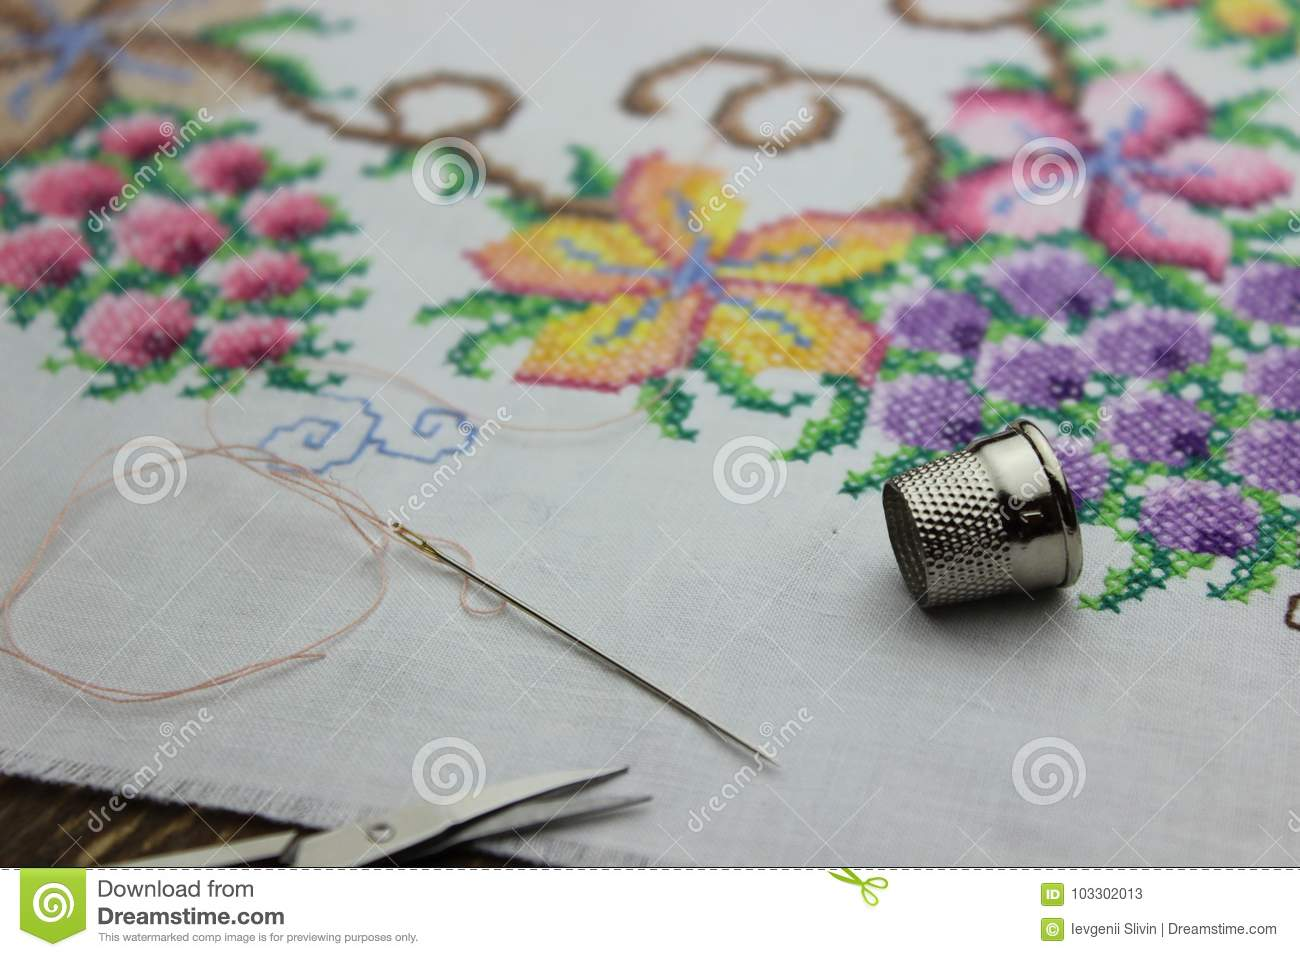 Hand embroidery with needle and scissors